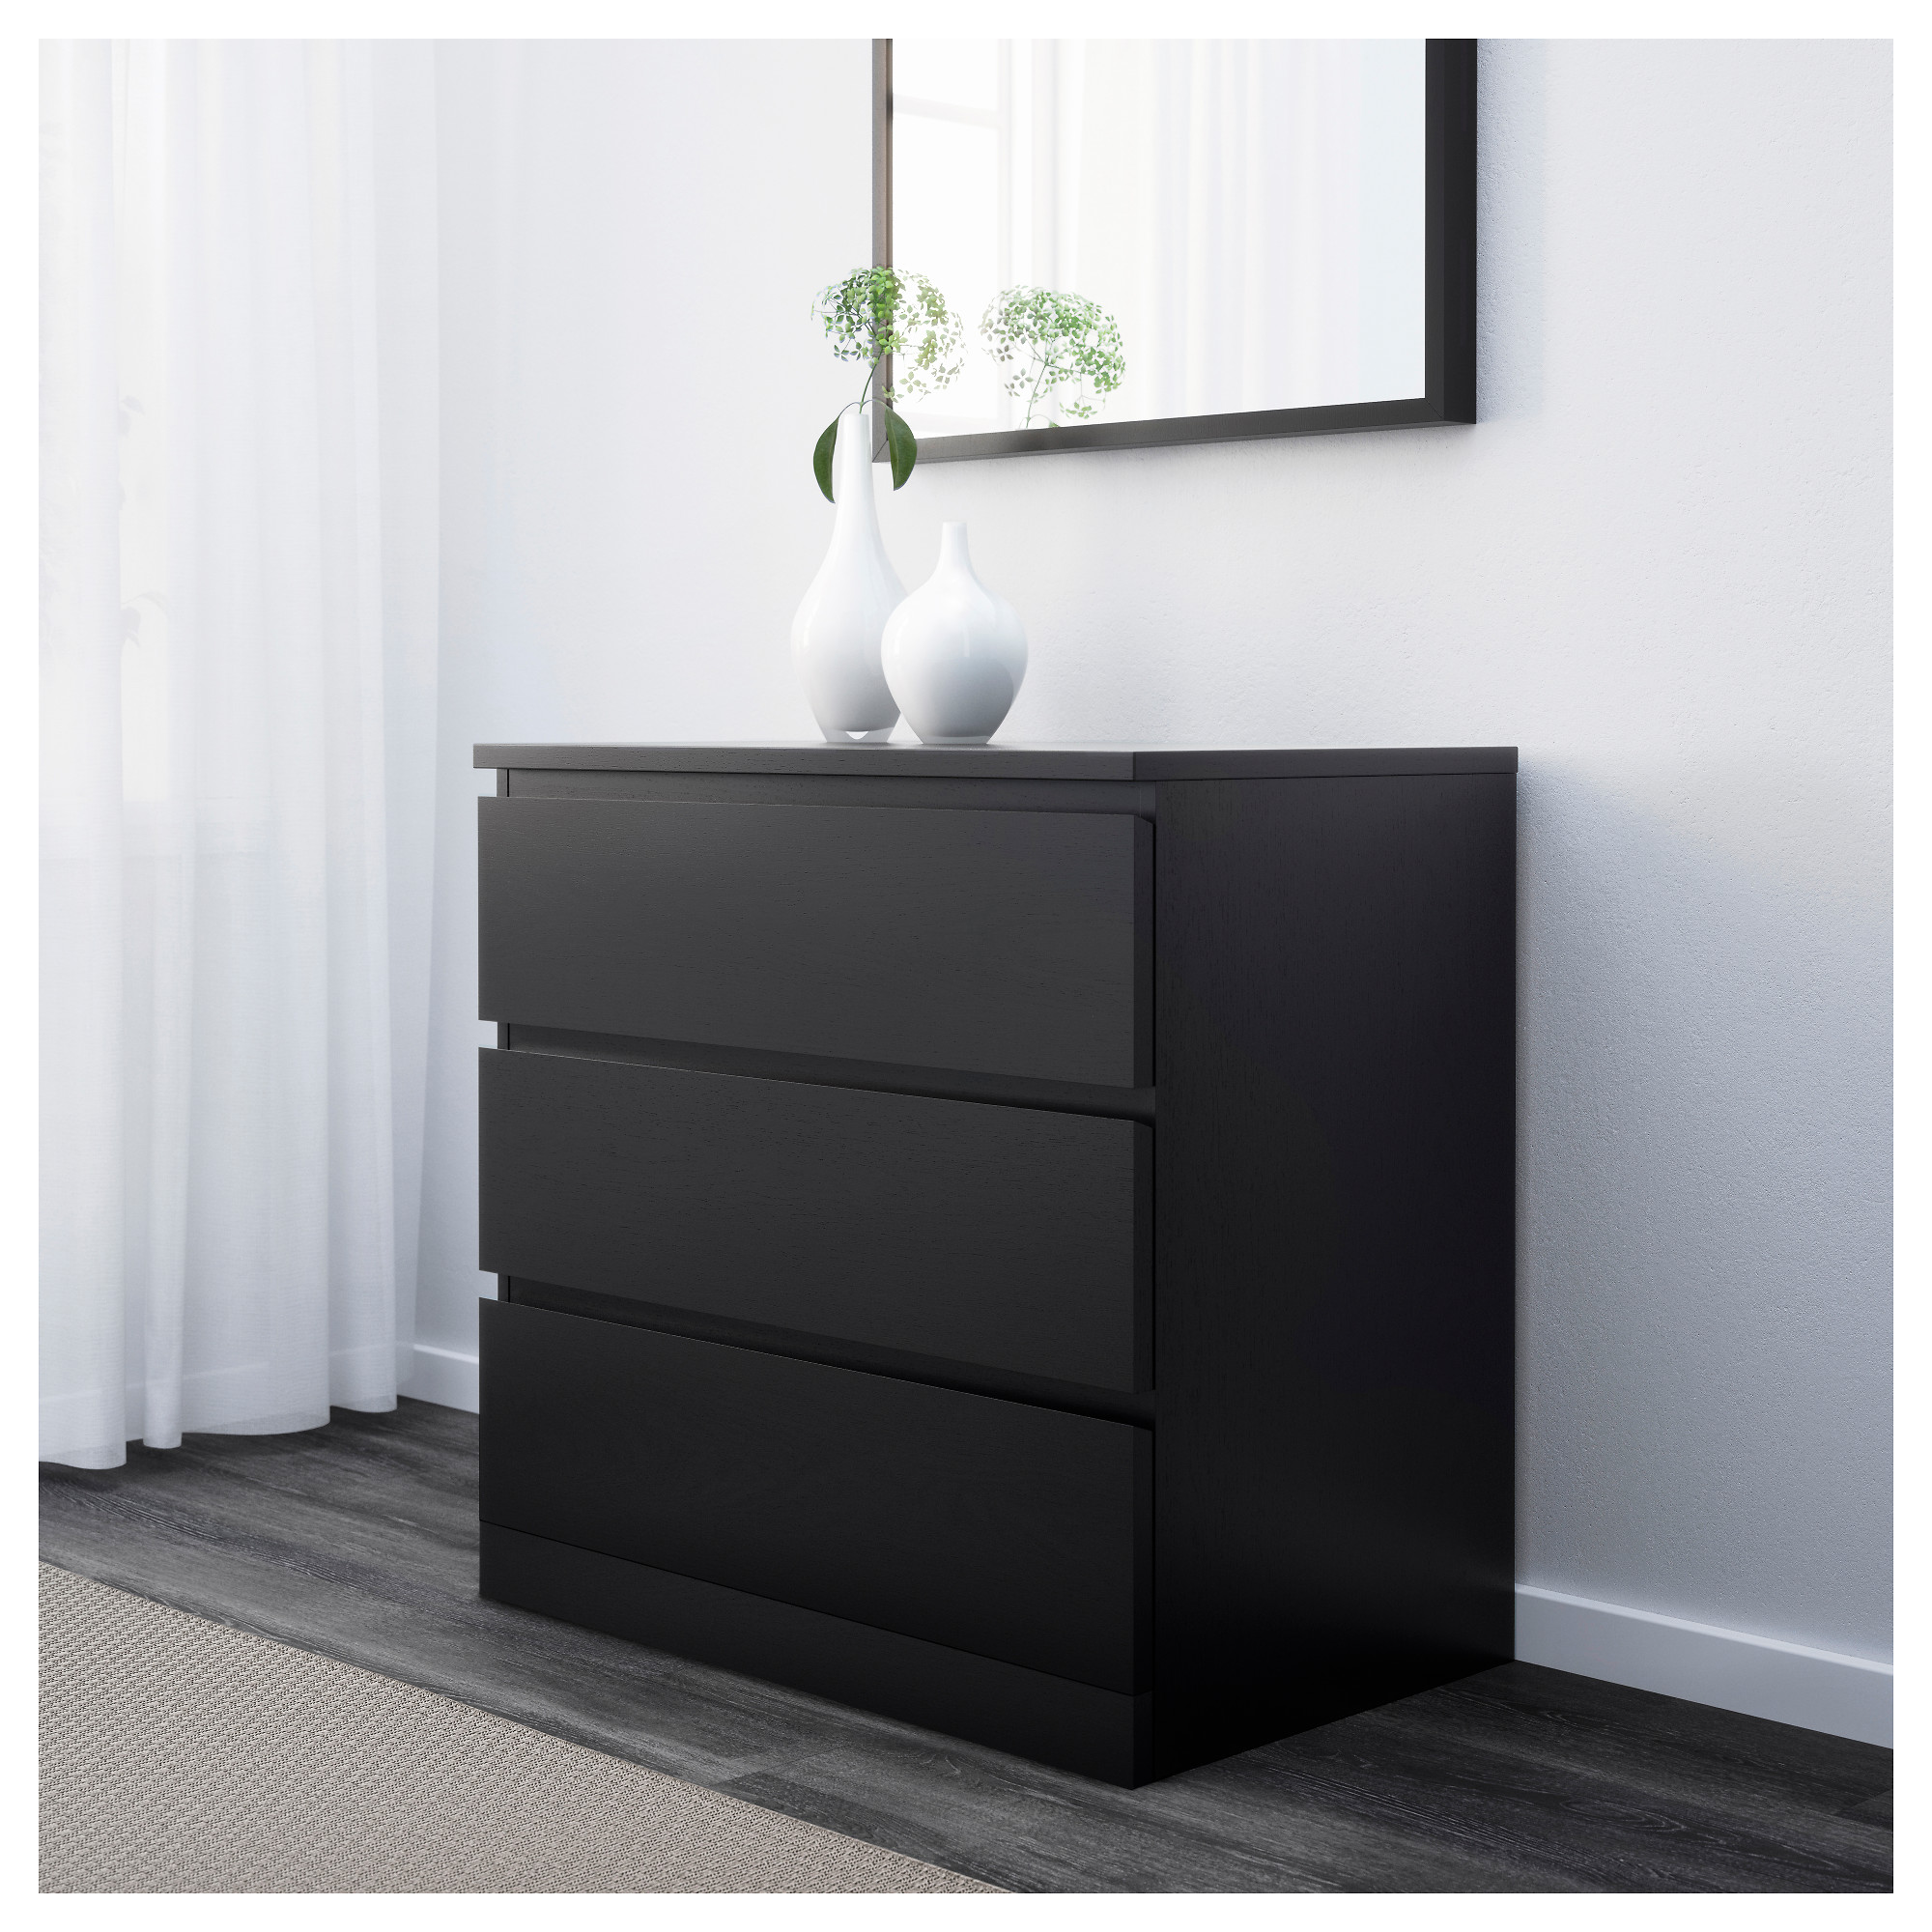 sleek particleboard chest bedroom black concealed lacquer moisture material and resistant outstanding runners handgrips size dresser wood mdf composite sleeping furniture decor of drawer full white room